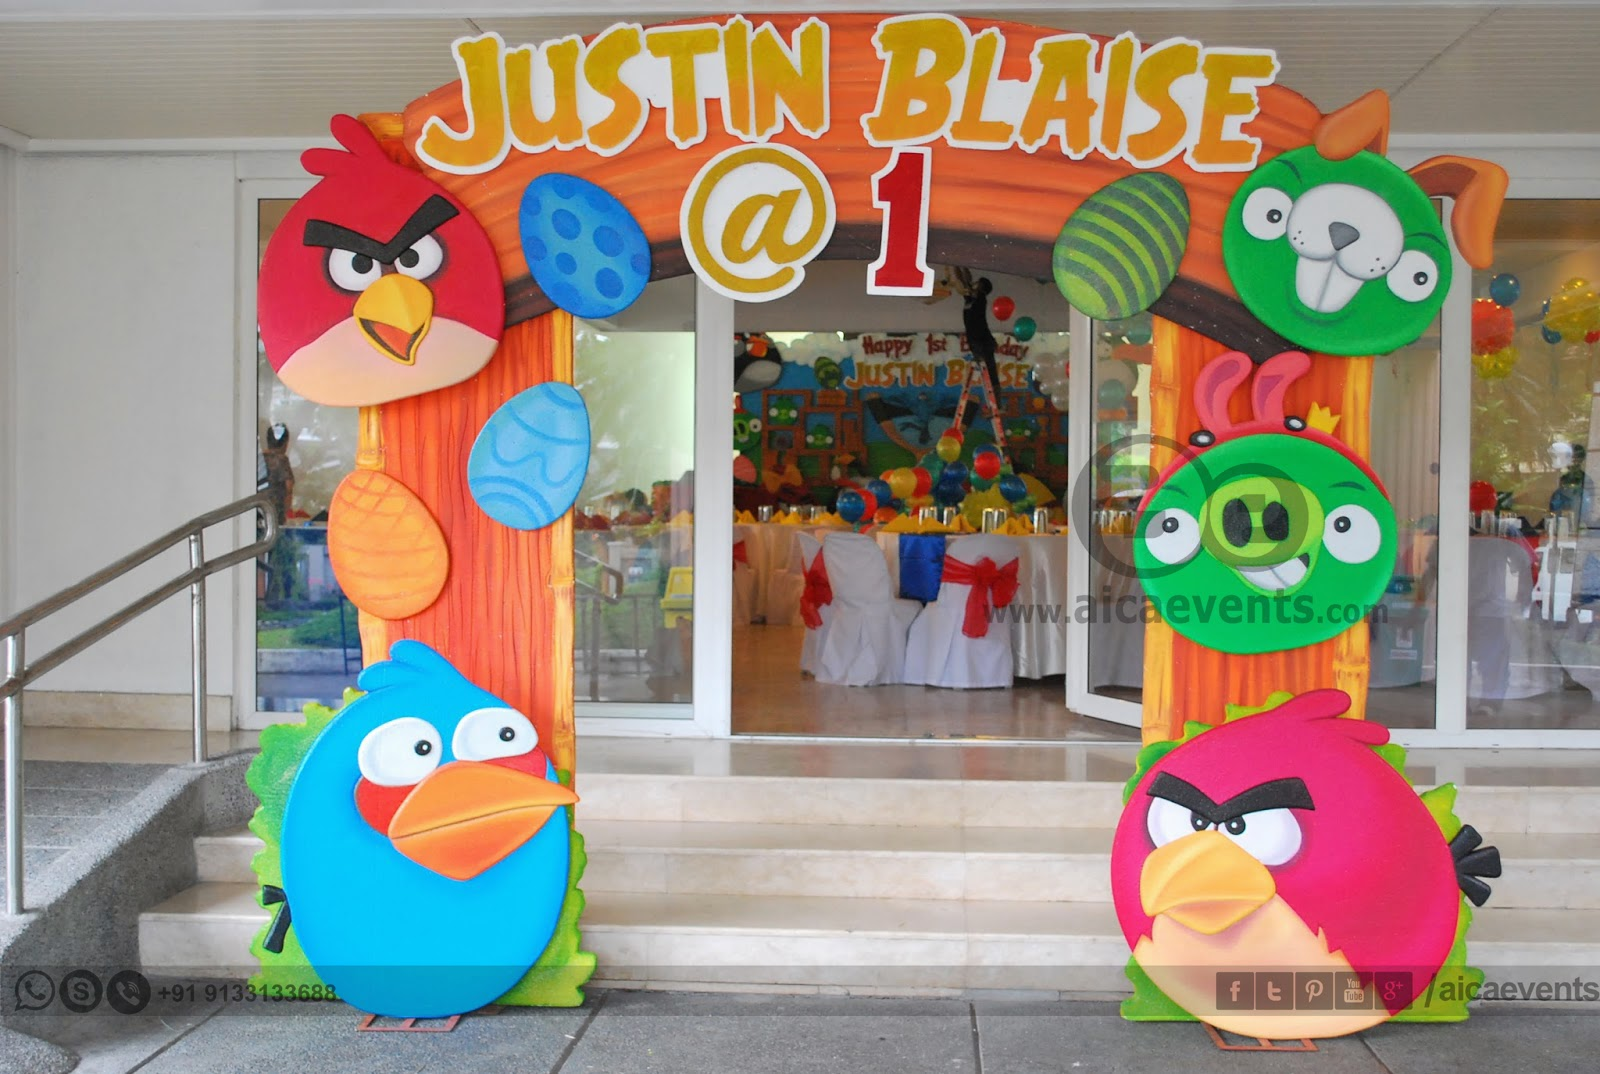 Aicaevents India: Angry Bird Theme Decors for Birthday parties